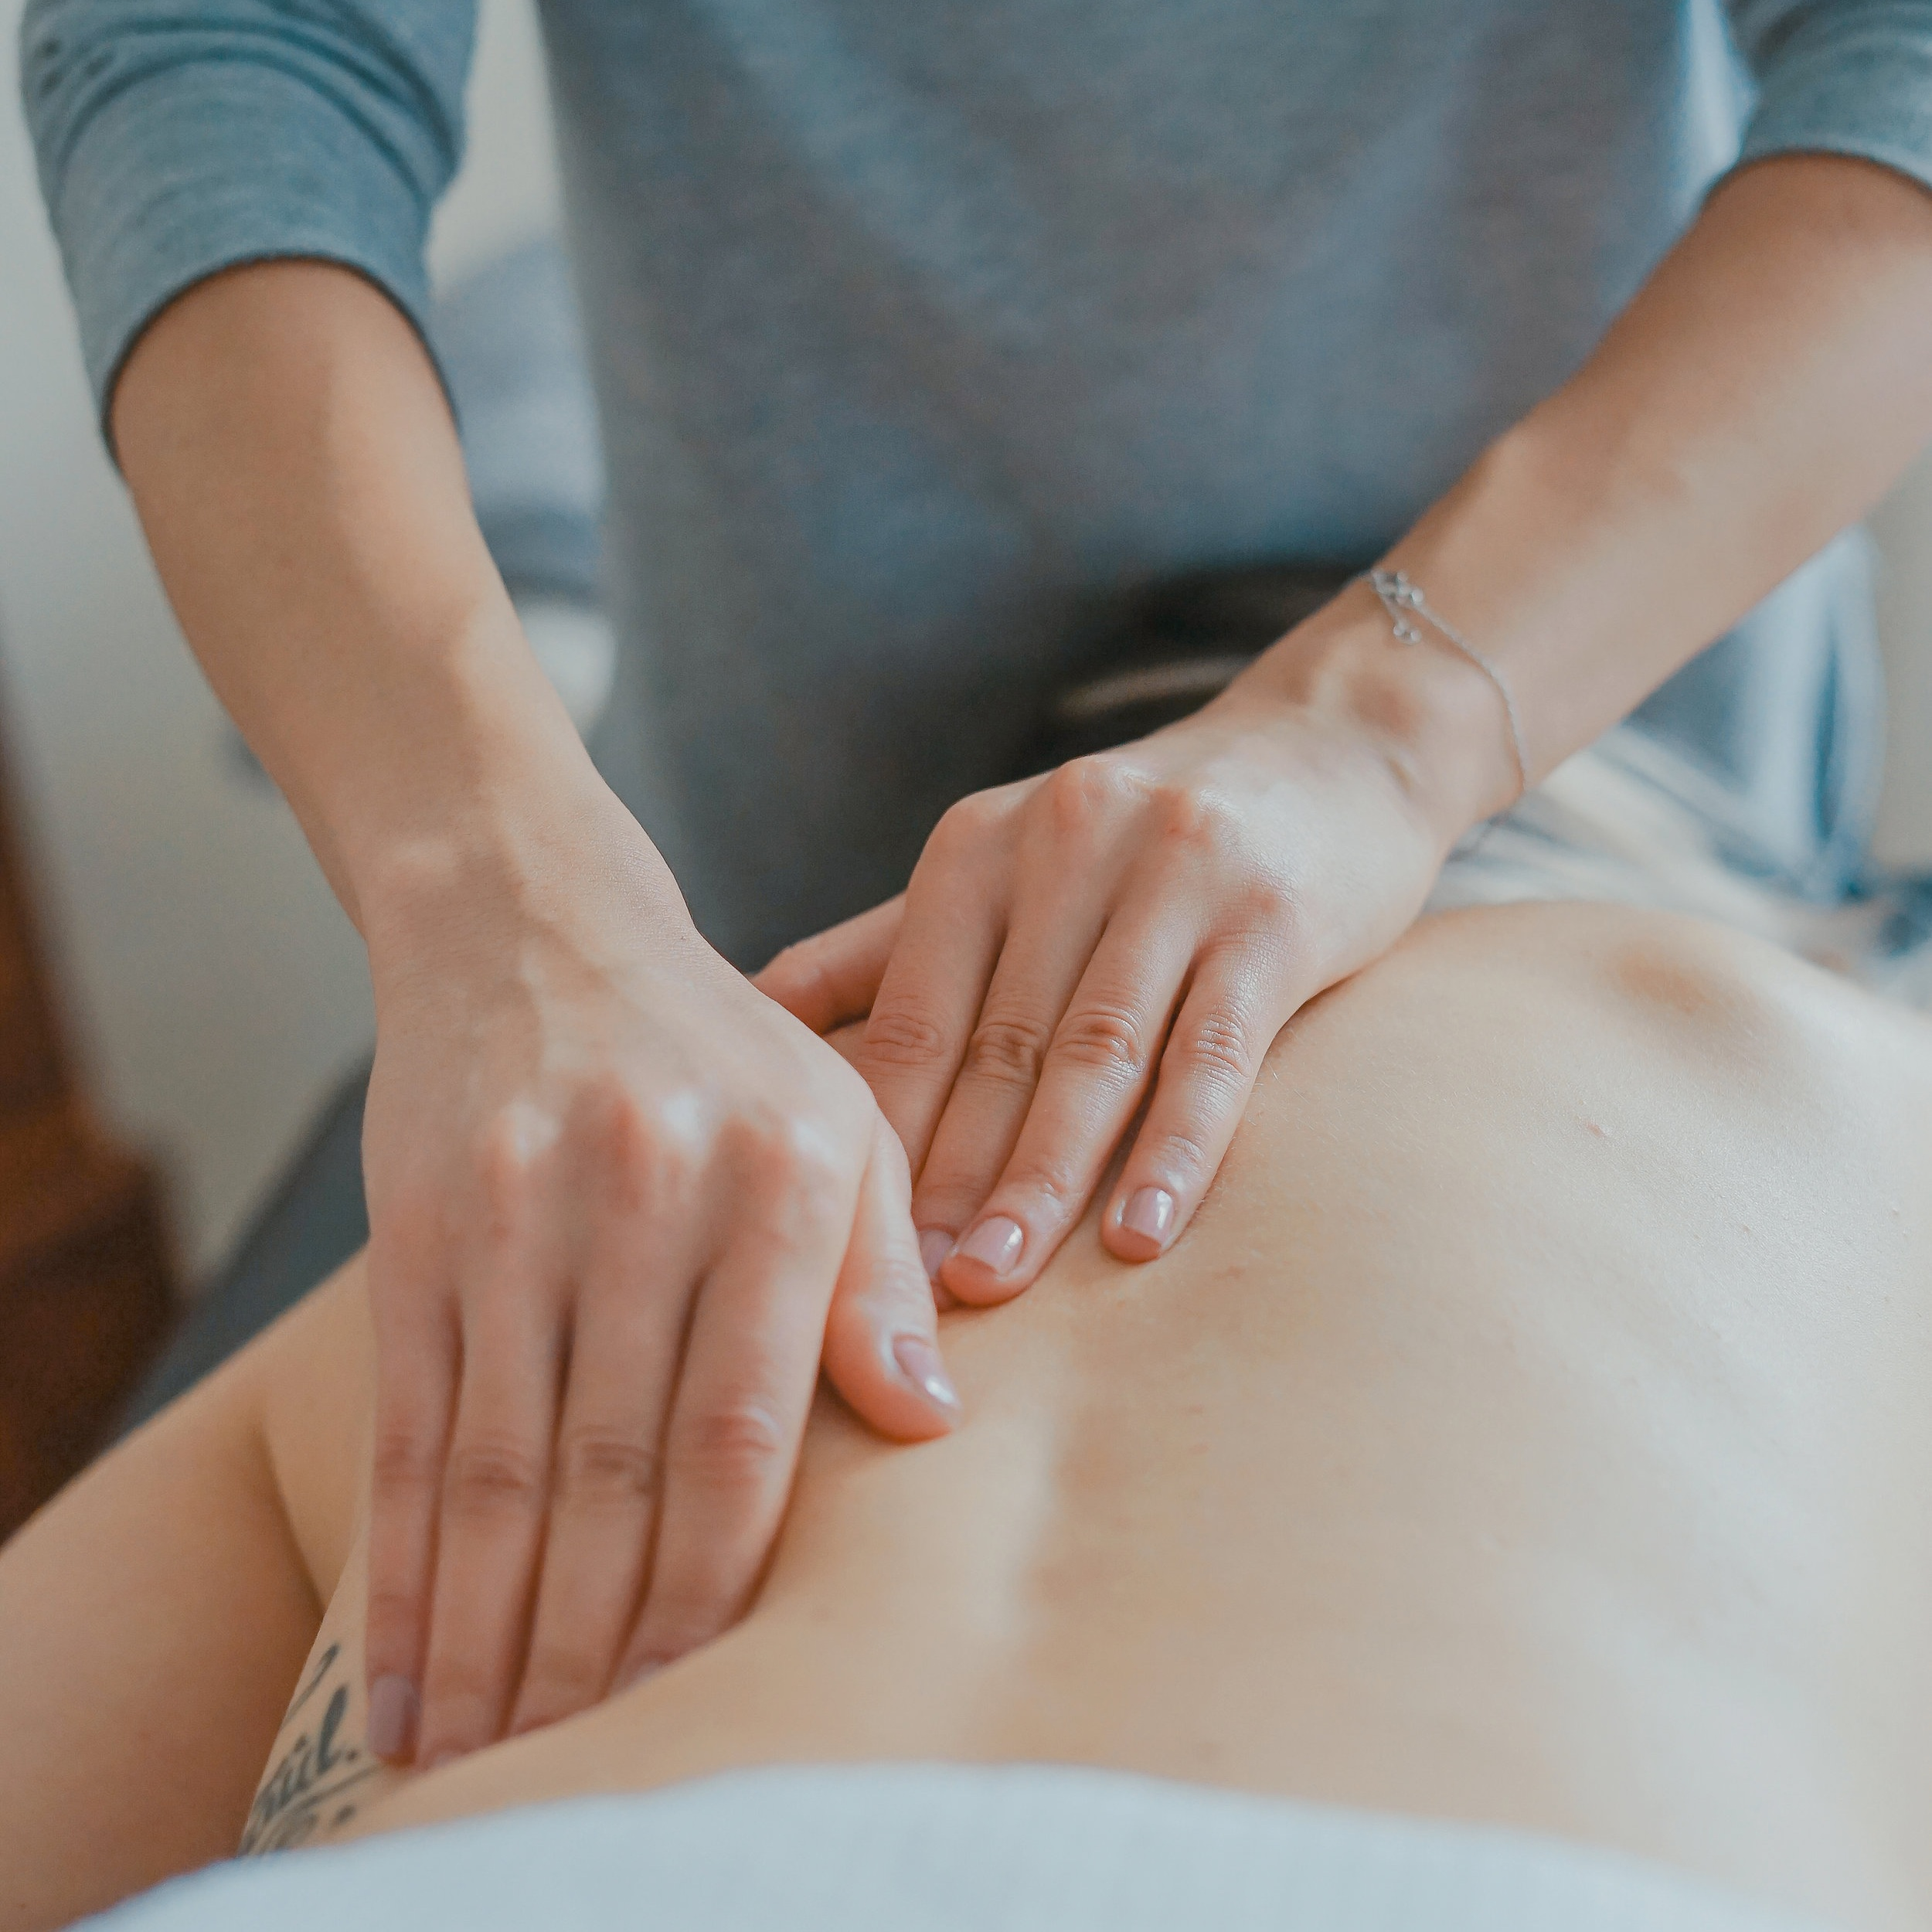 Massage Therapy - Whether you need Swedish or deep tissue, our therapists know a variety of different massage techniques that are sure to meet your needs.